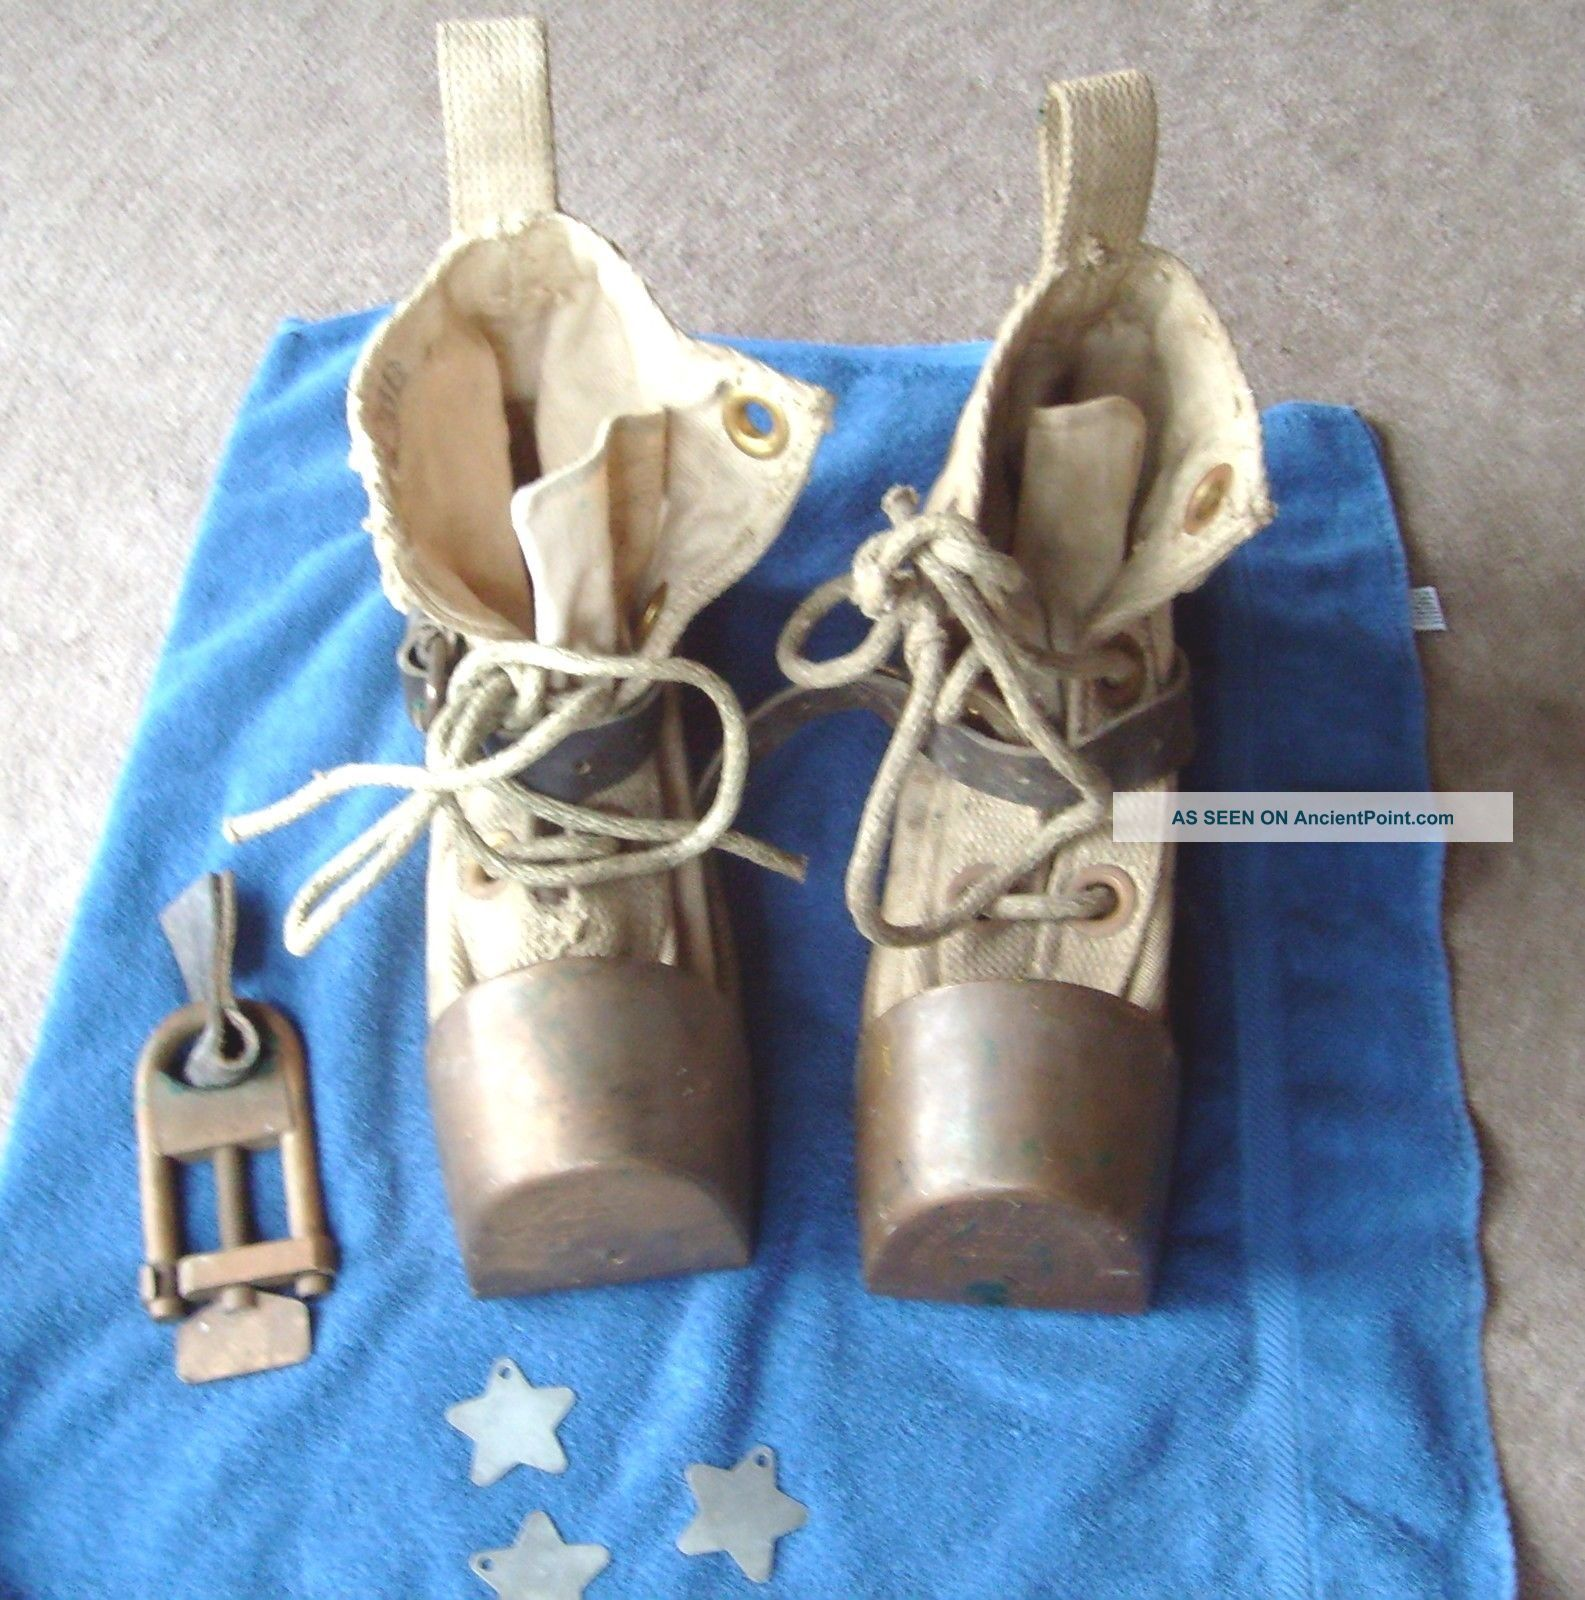 Vintage Us Navy Diving Boots Desco Bronze, Diving Helmets photo